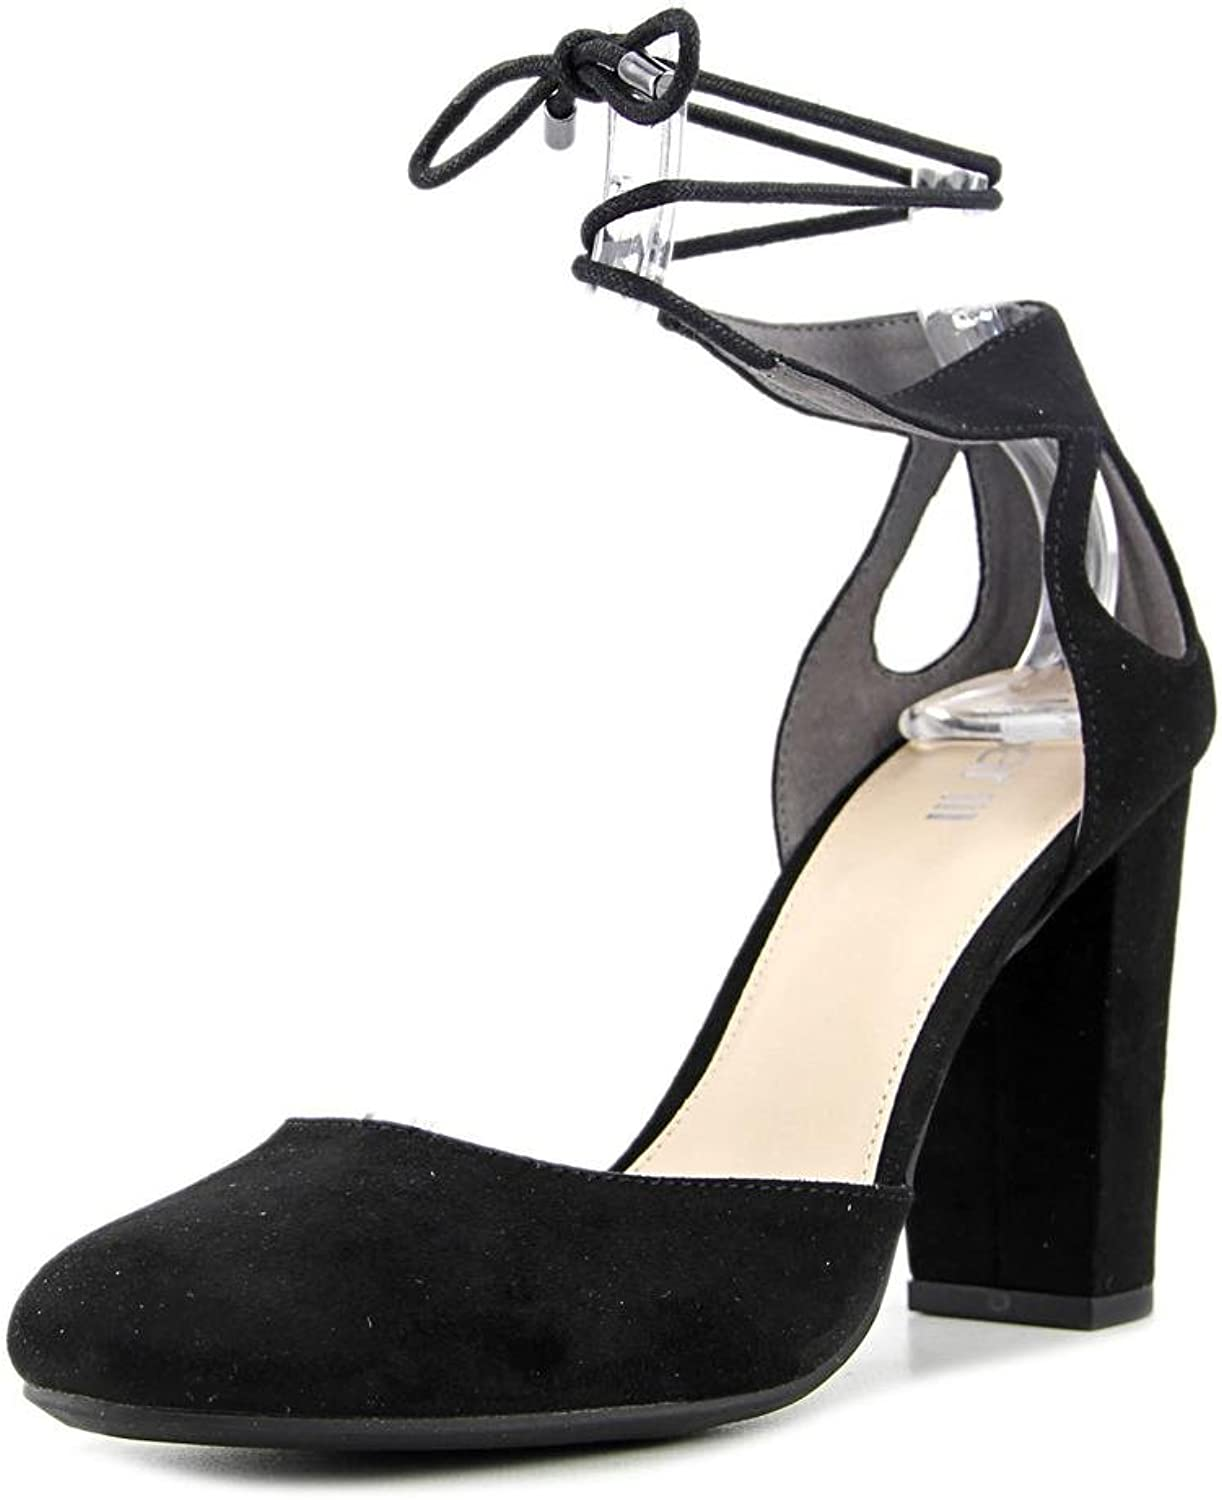 Bar III Womens Sabrina Closed Toe Ankle Strap D-orsay Pumps, Black, Size 7.0